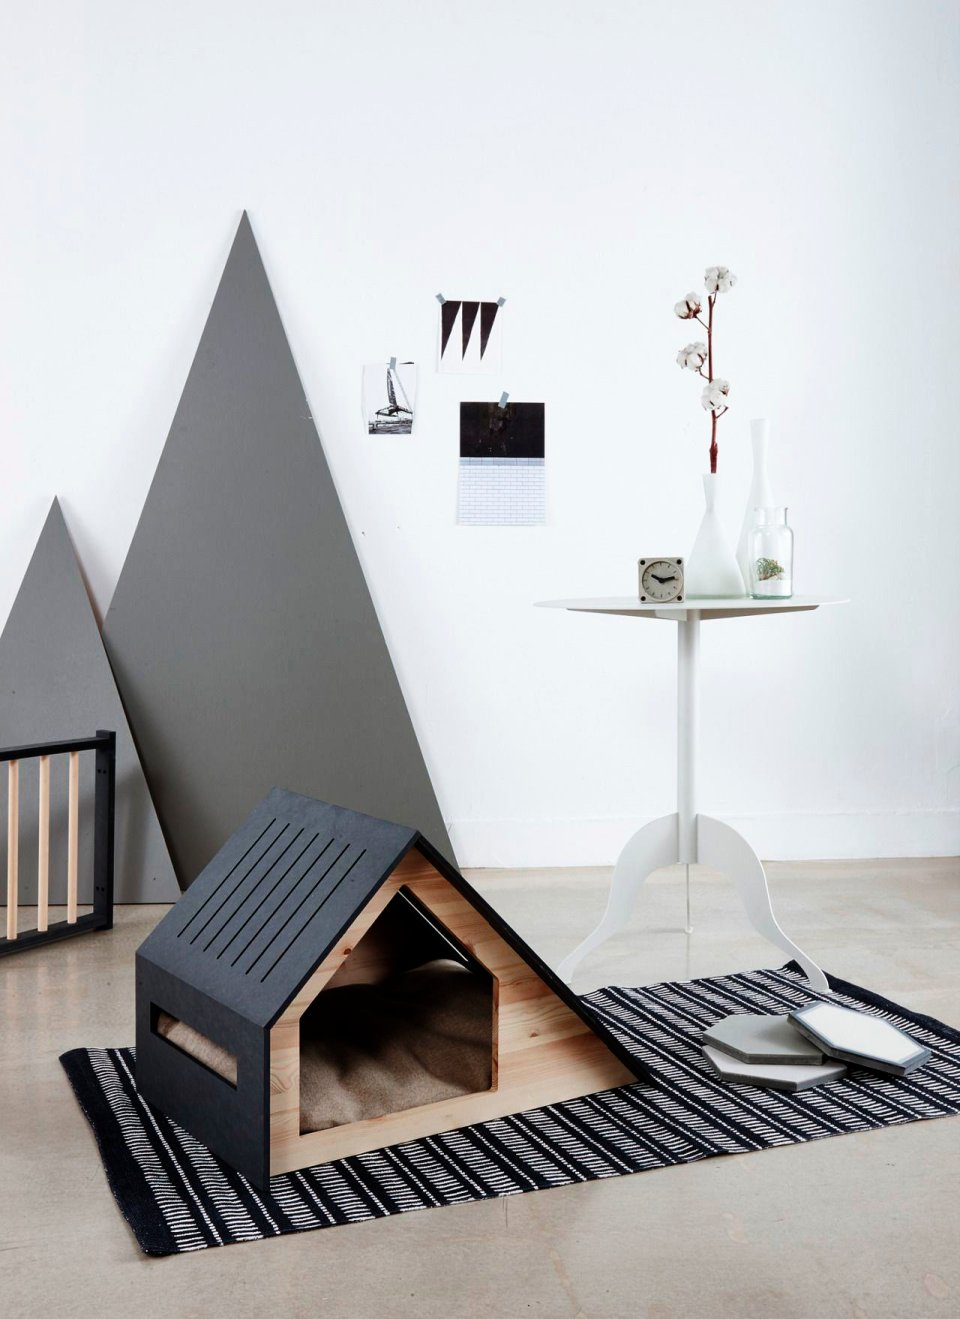 Black and elegant house for dogs or cats